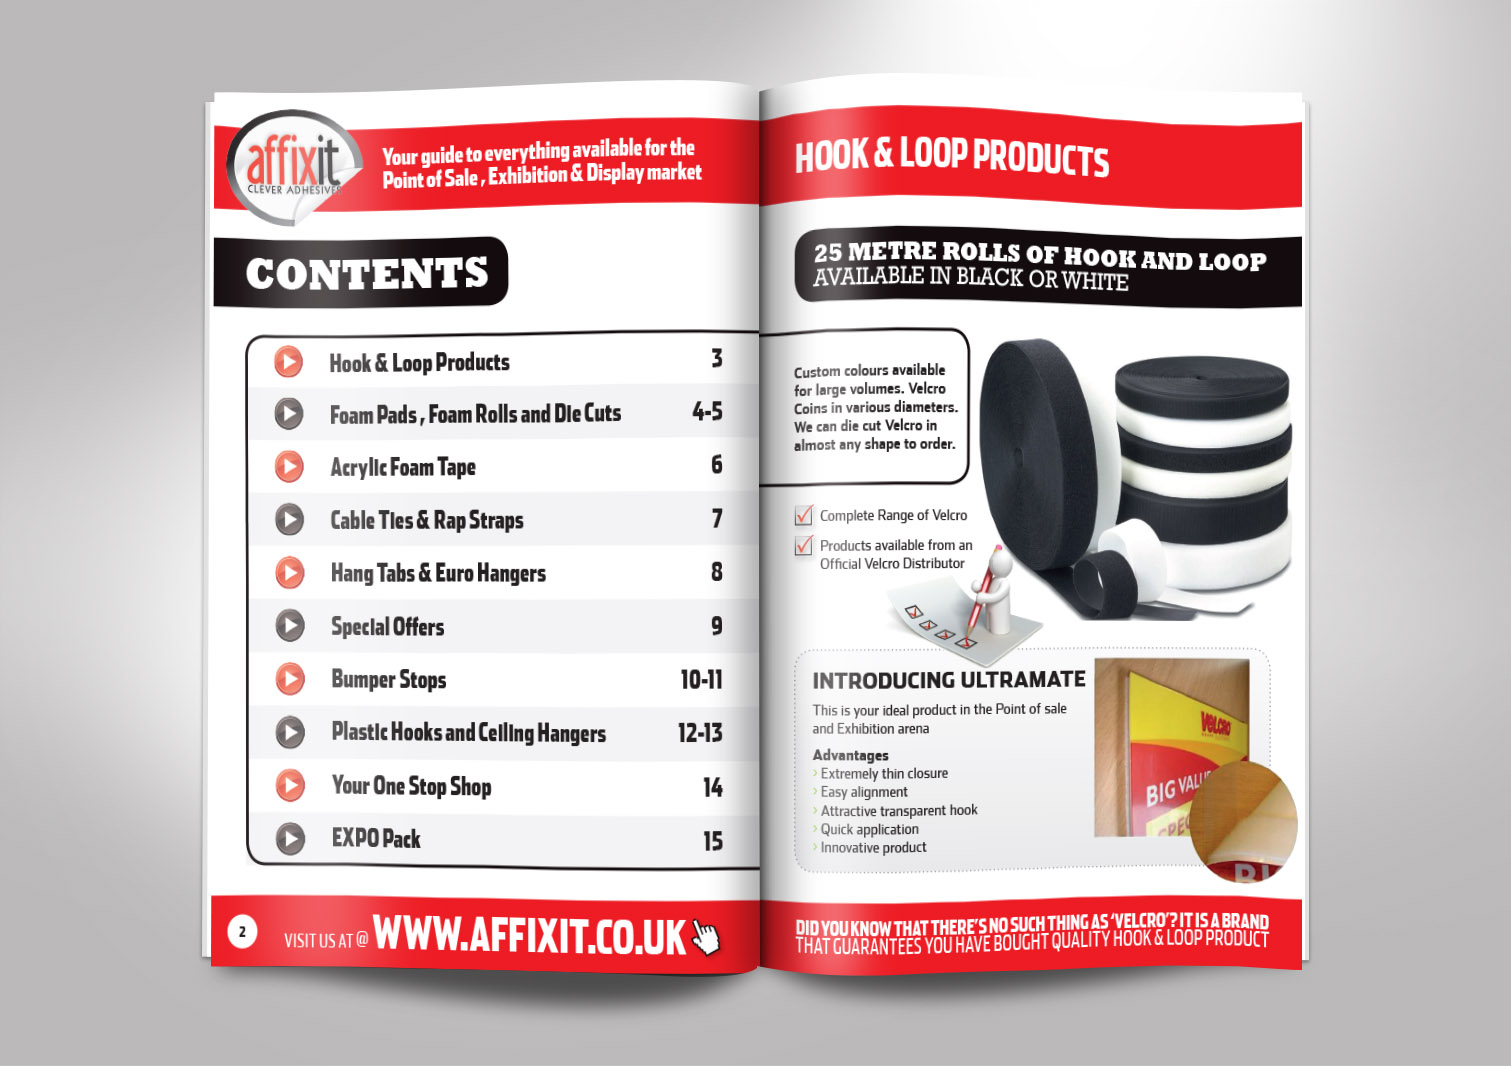 Affixit Buyer Guide Inside Pages 2 and 3